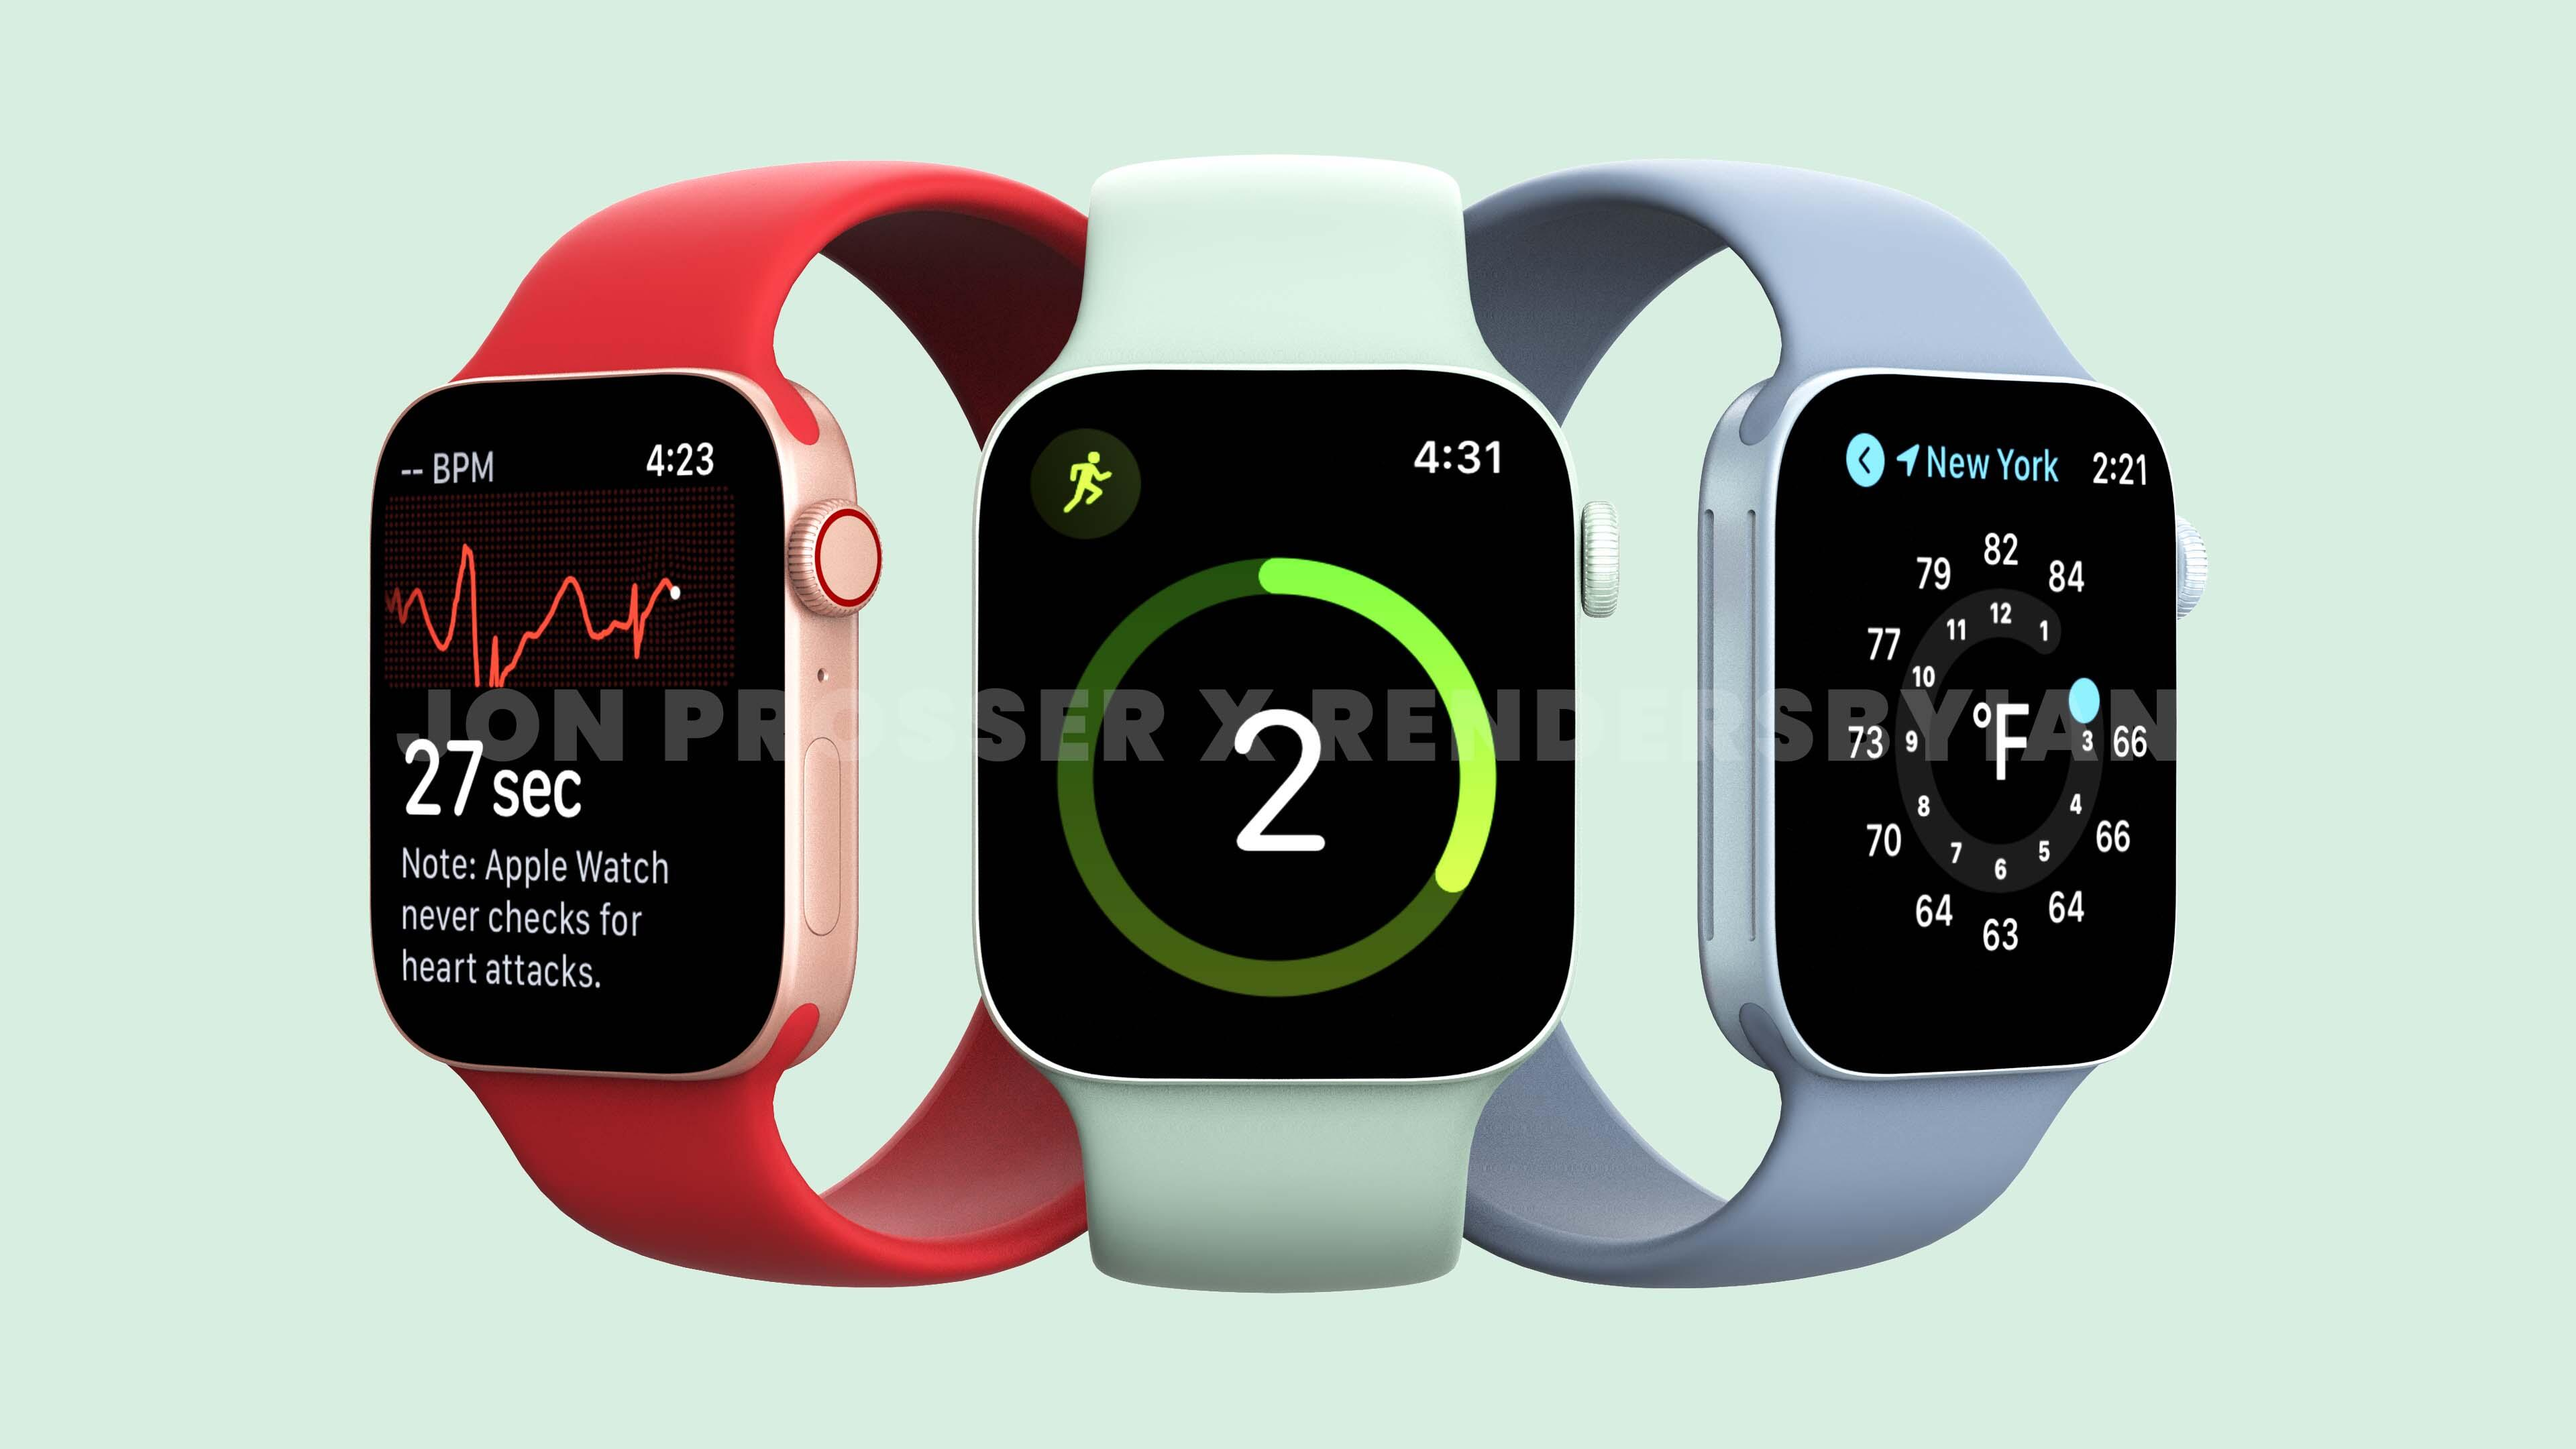 Apple Watch 7 rumors: the new smartwatch could arrive in September